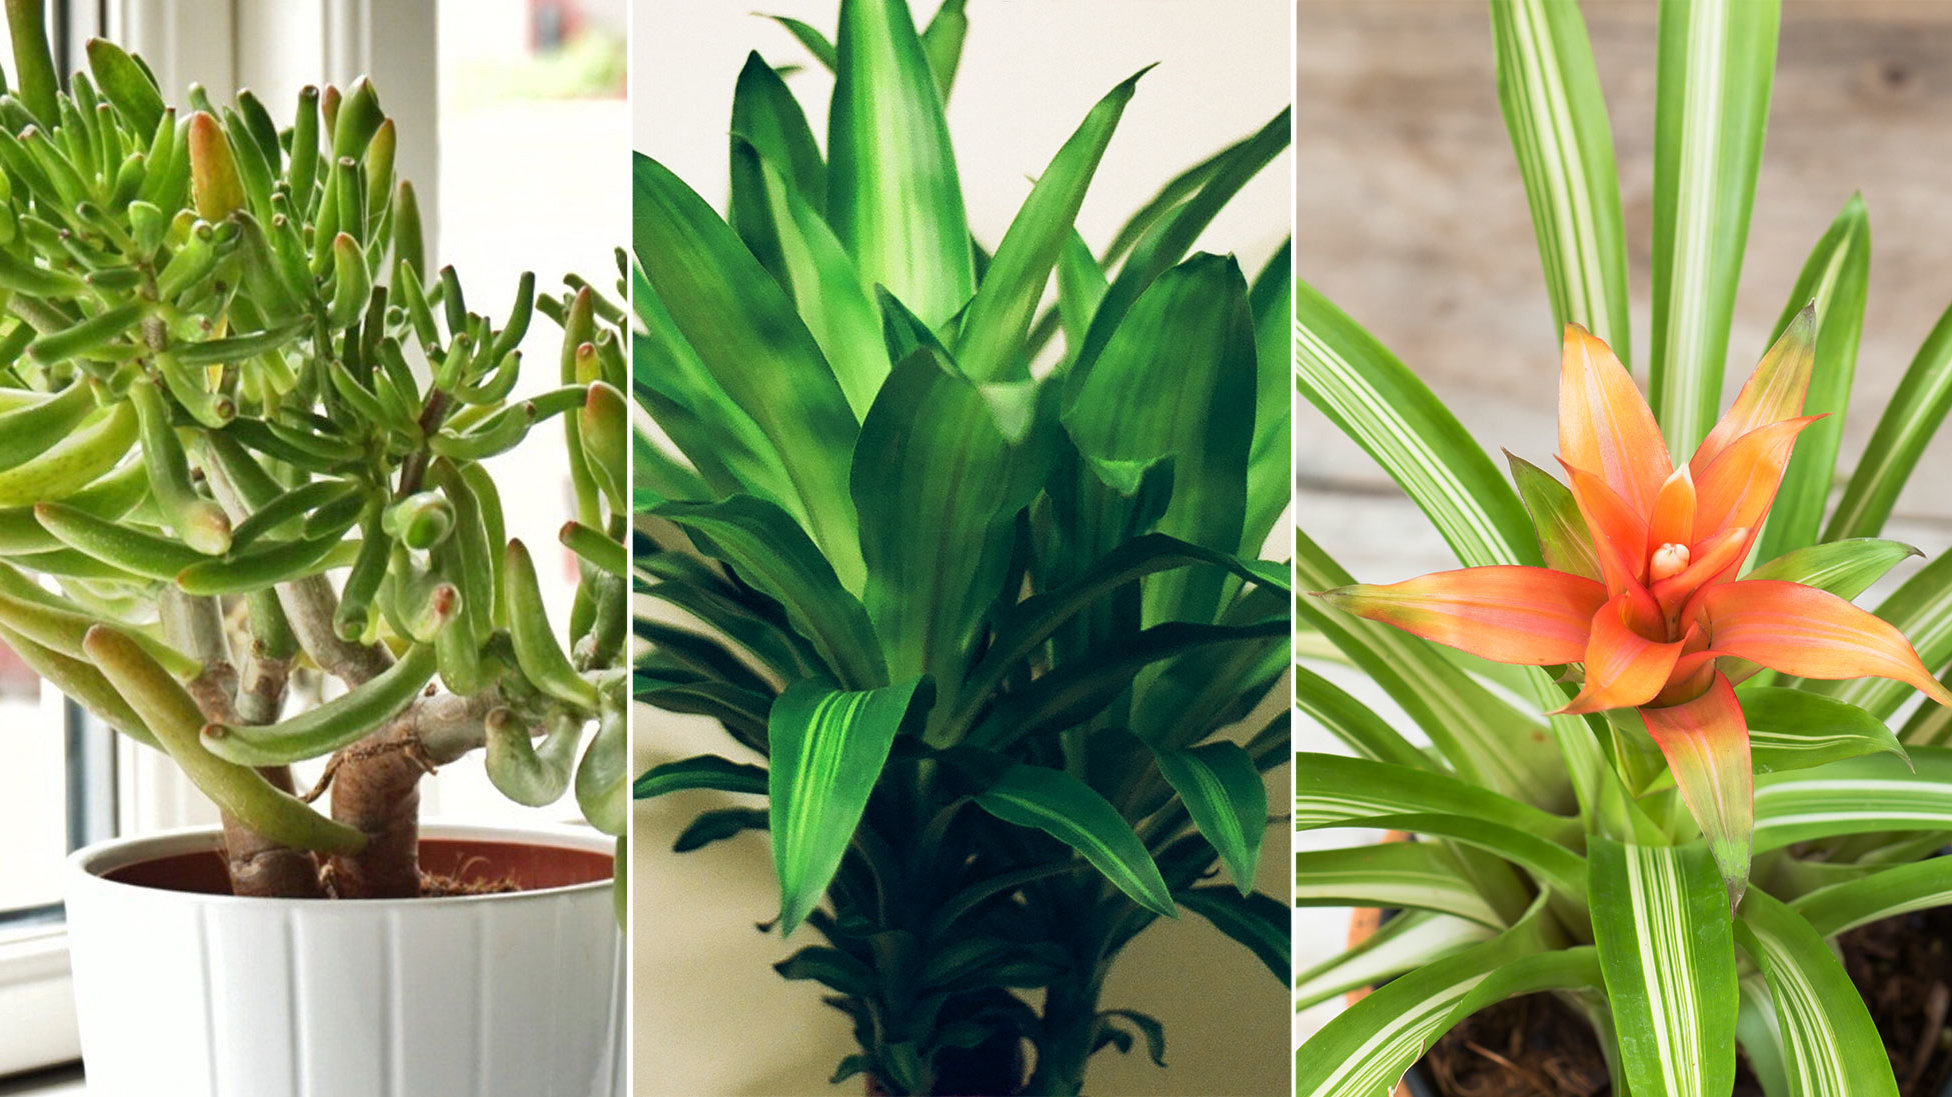 Air purifying indoor plants health Images of indoor plants